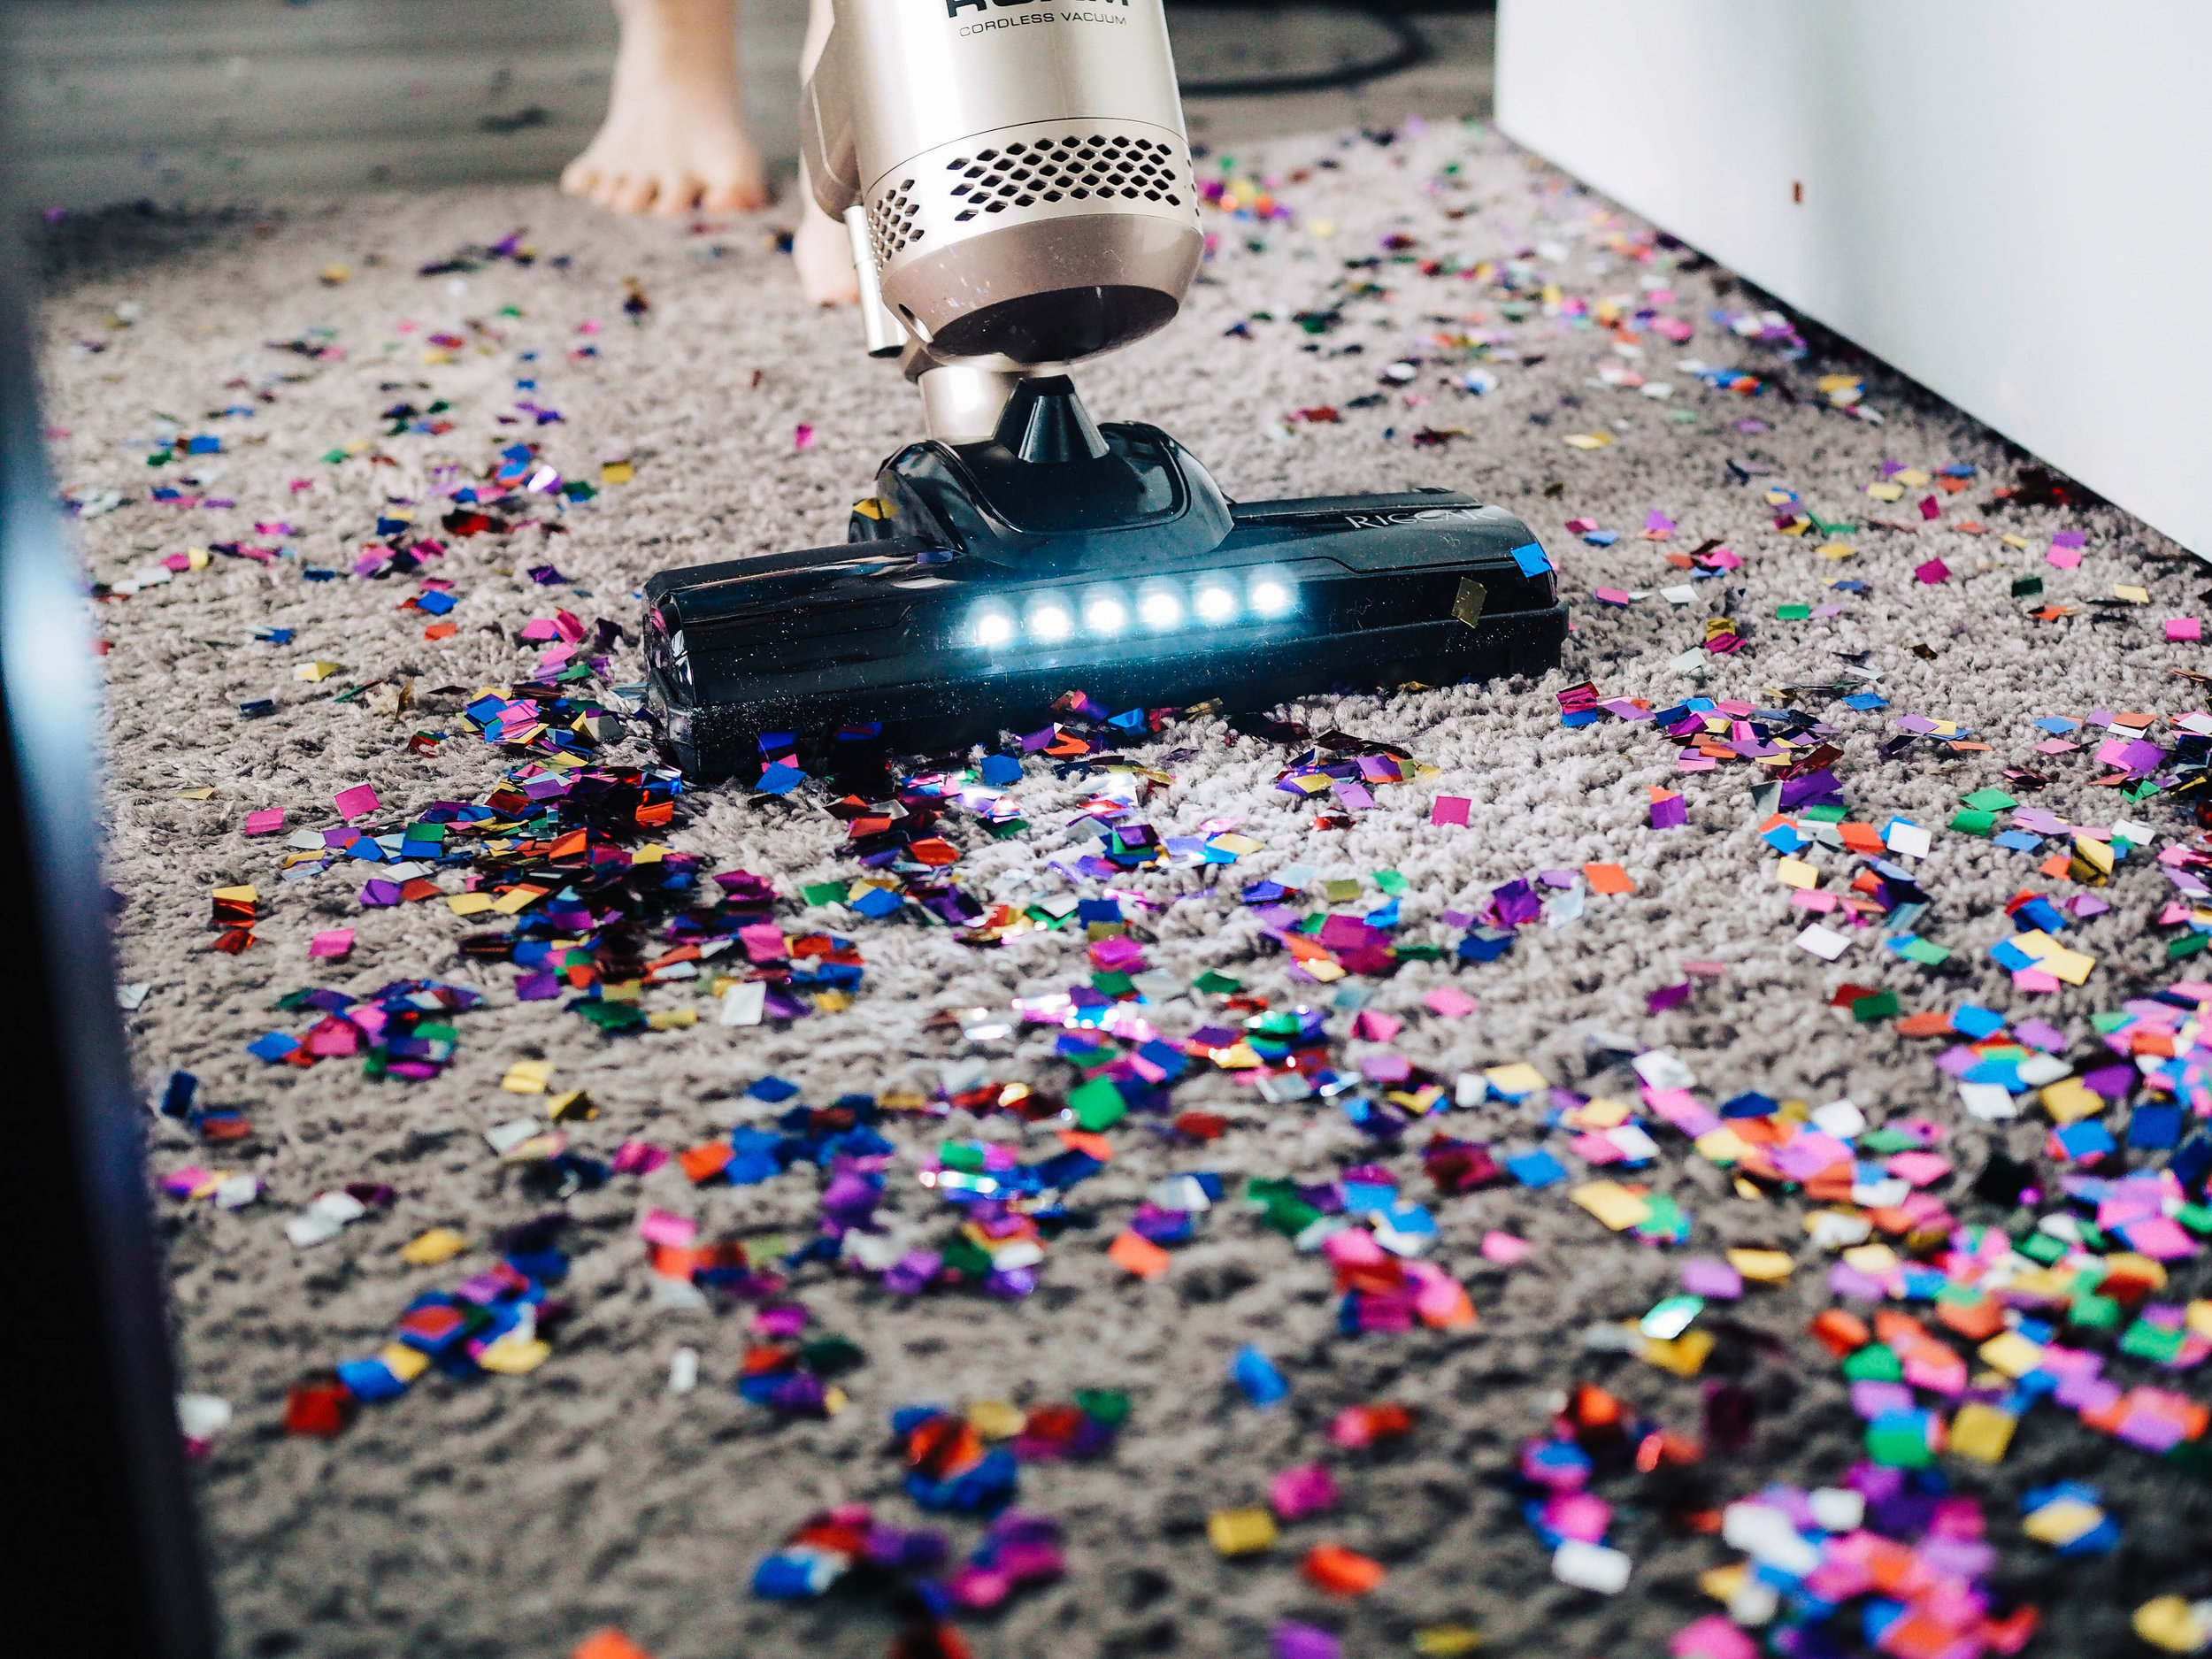 I clean my house - Vacuuming glitter is a regular thing in our house!